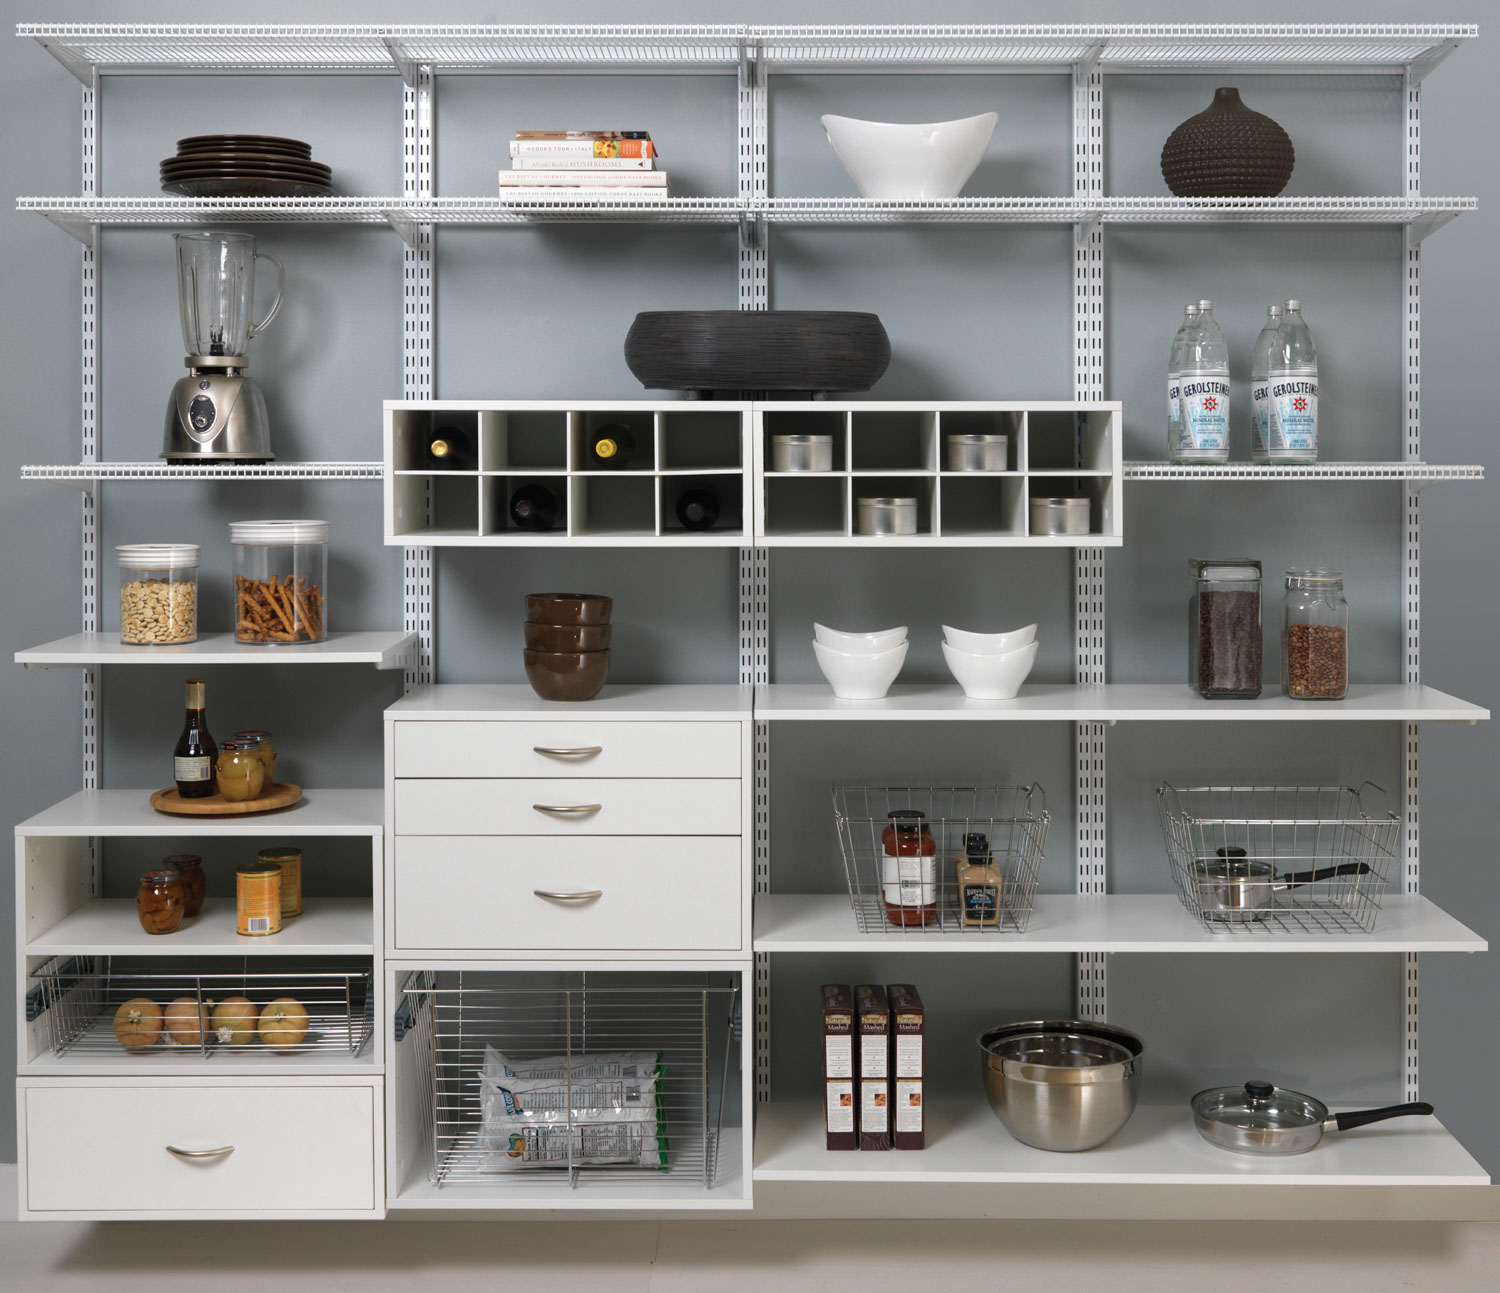 Pantry shelving home design for Kitchen cabinets lowes with sf giants wall art